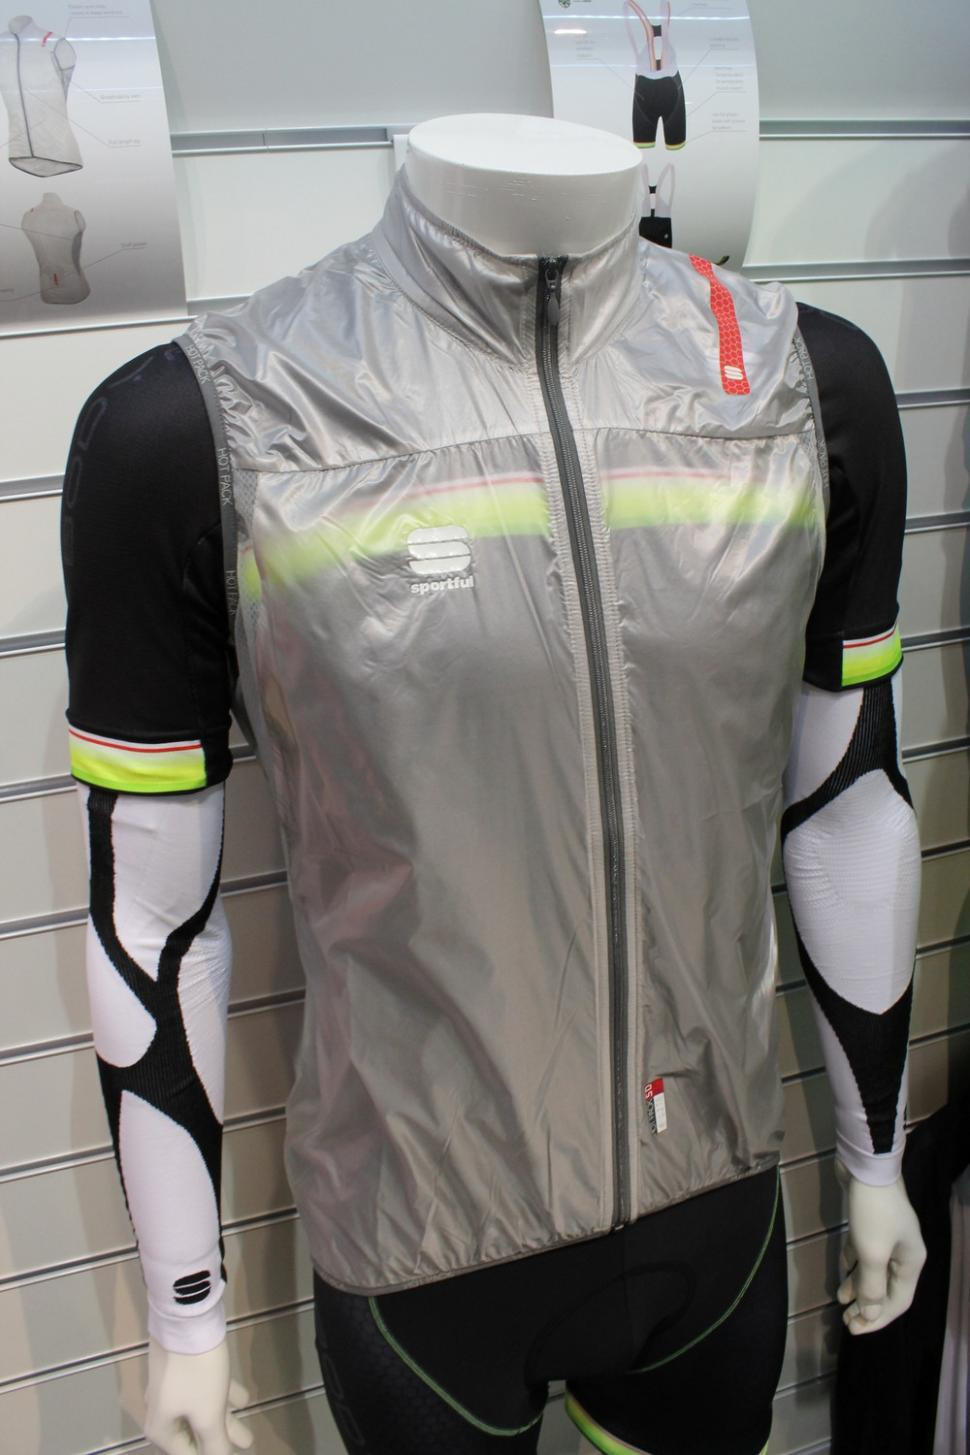 cbec11ed New cycle clothing from Gore Bike Wear and Sportful | road.cc